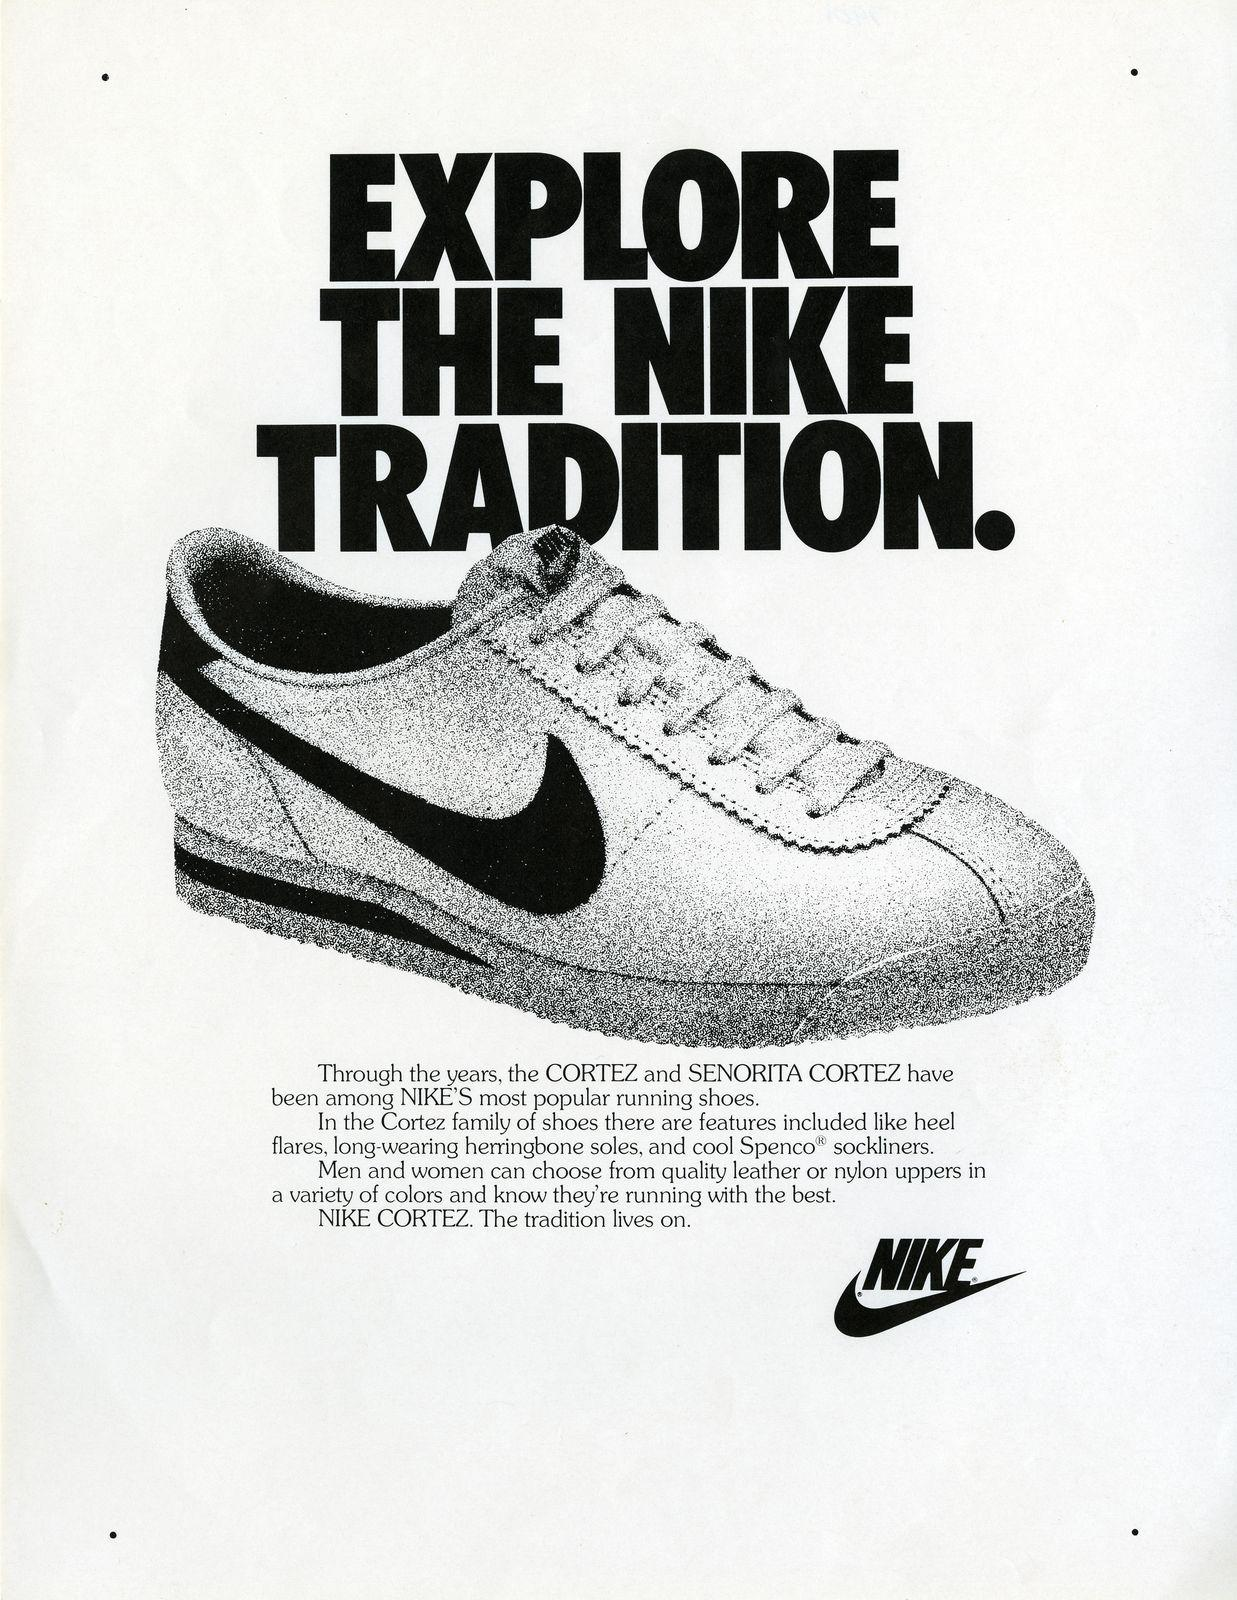 finest selection ebf64 36441 Nike Cortez Tradition ad 1977